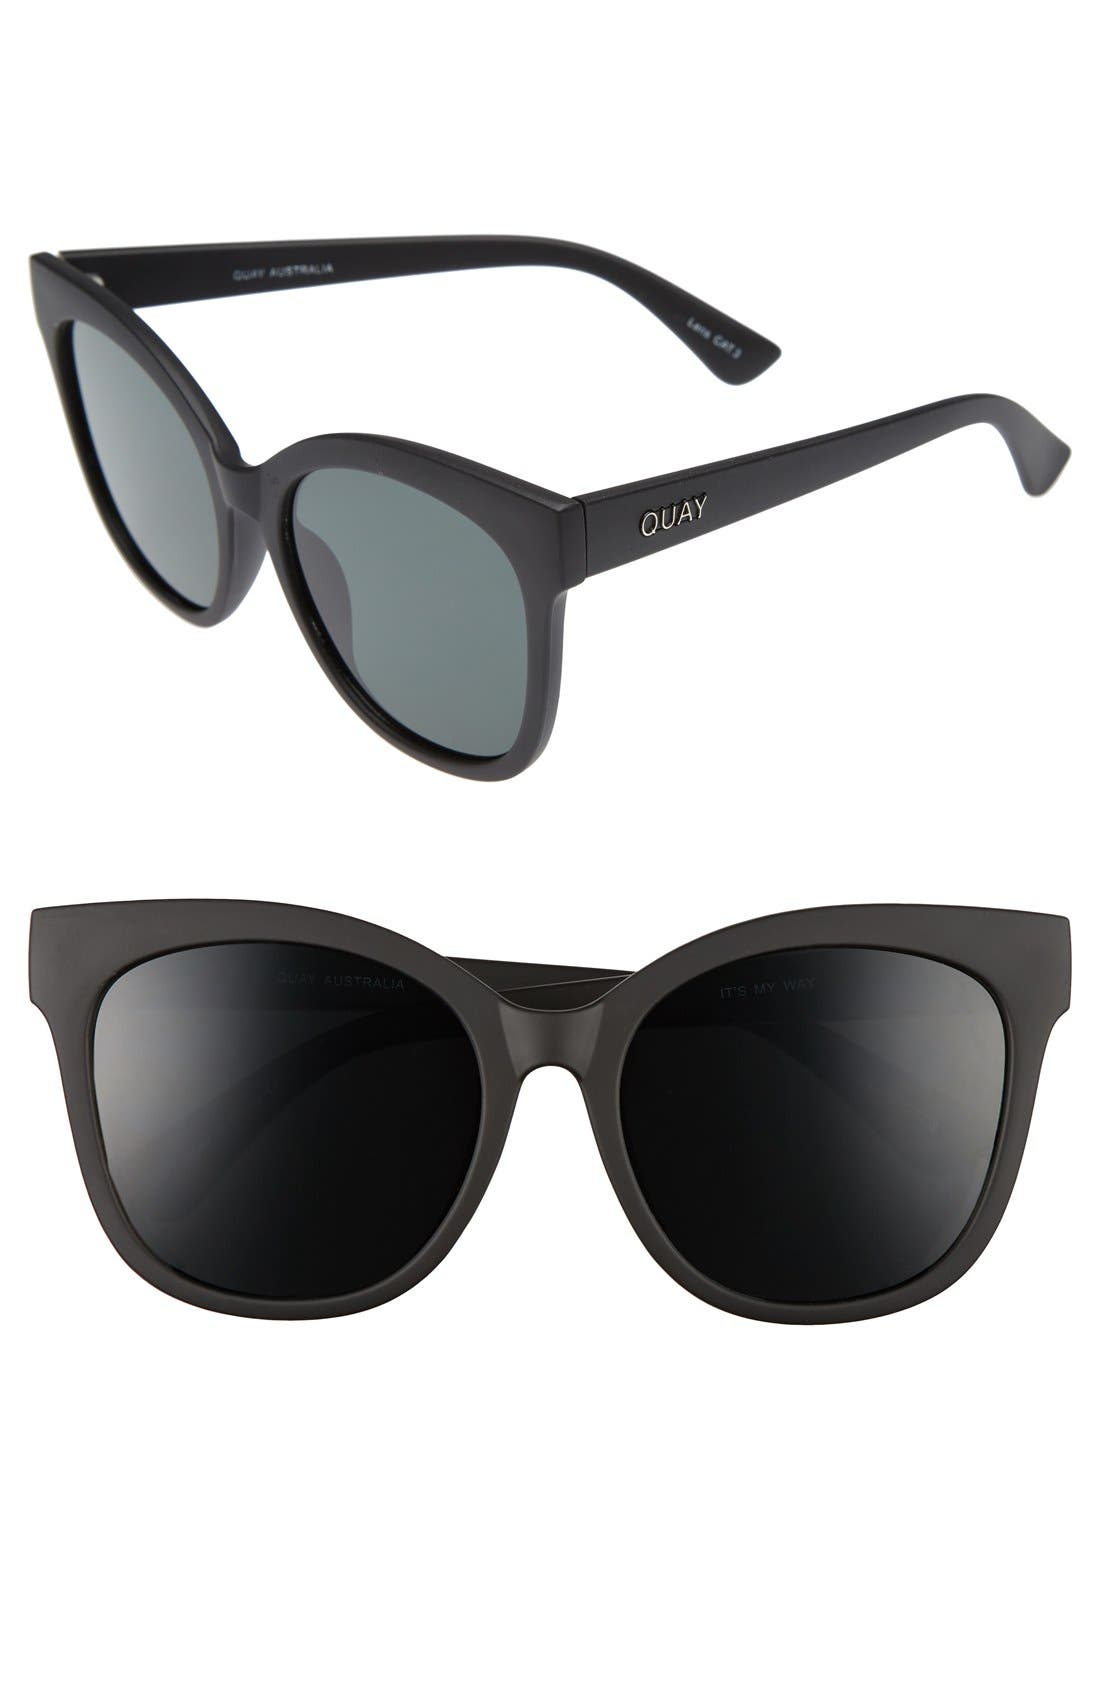 It's My Way 55mm Sunglasses,                         Main,                         color, Black/ Smoke